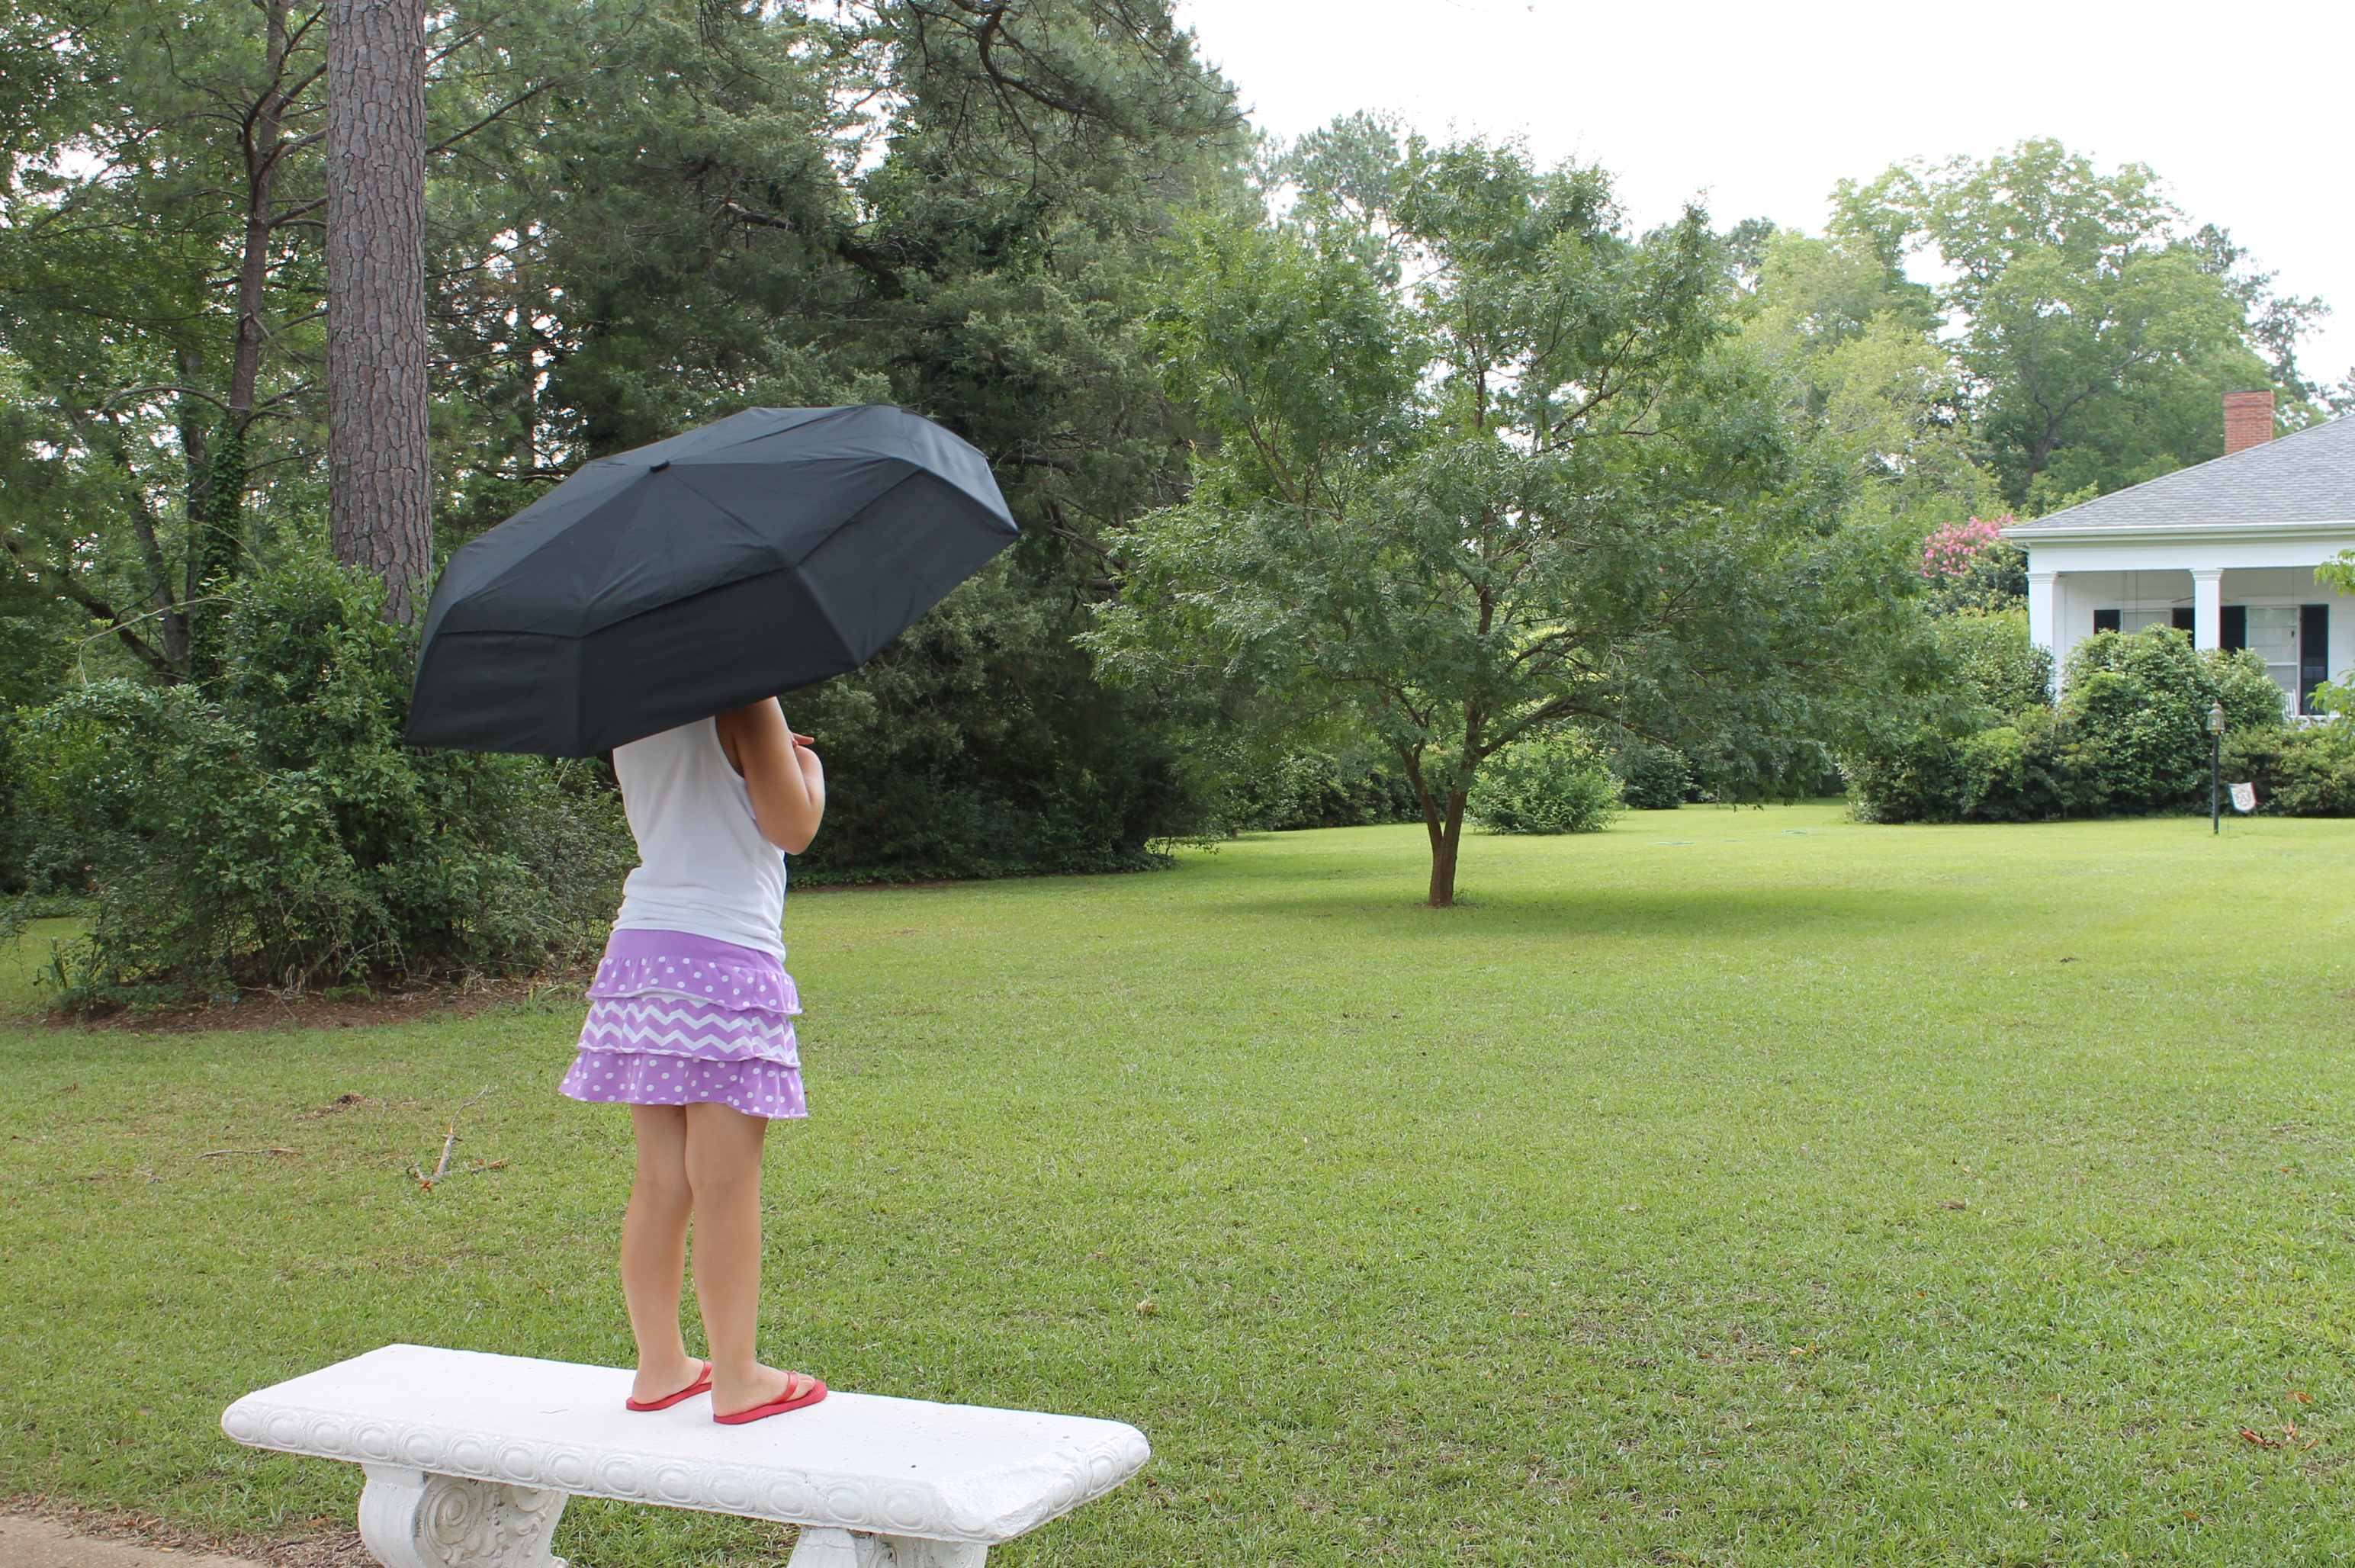 Me & My Travel Umbrella, Video by Abby